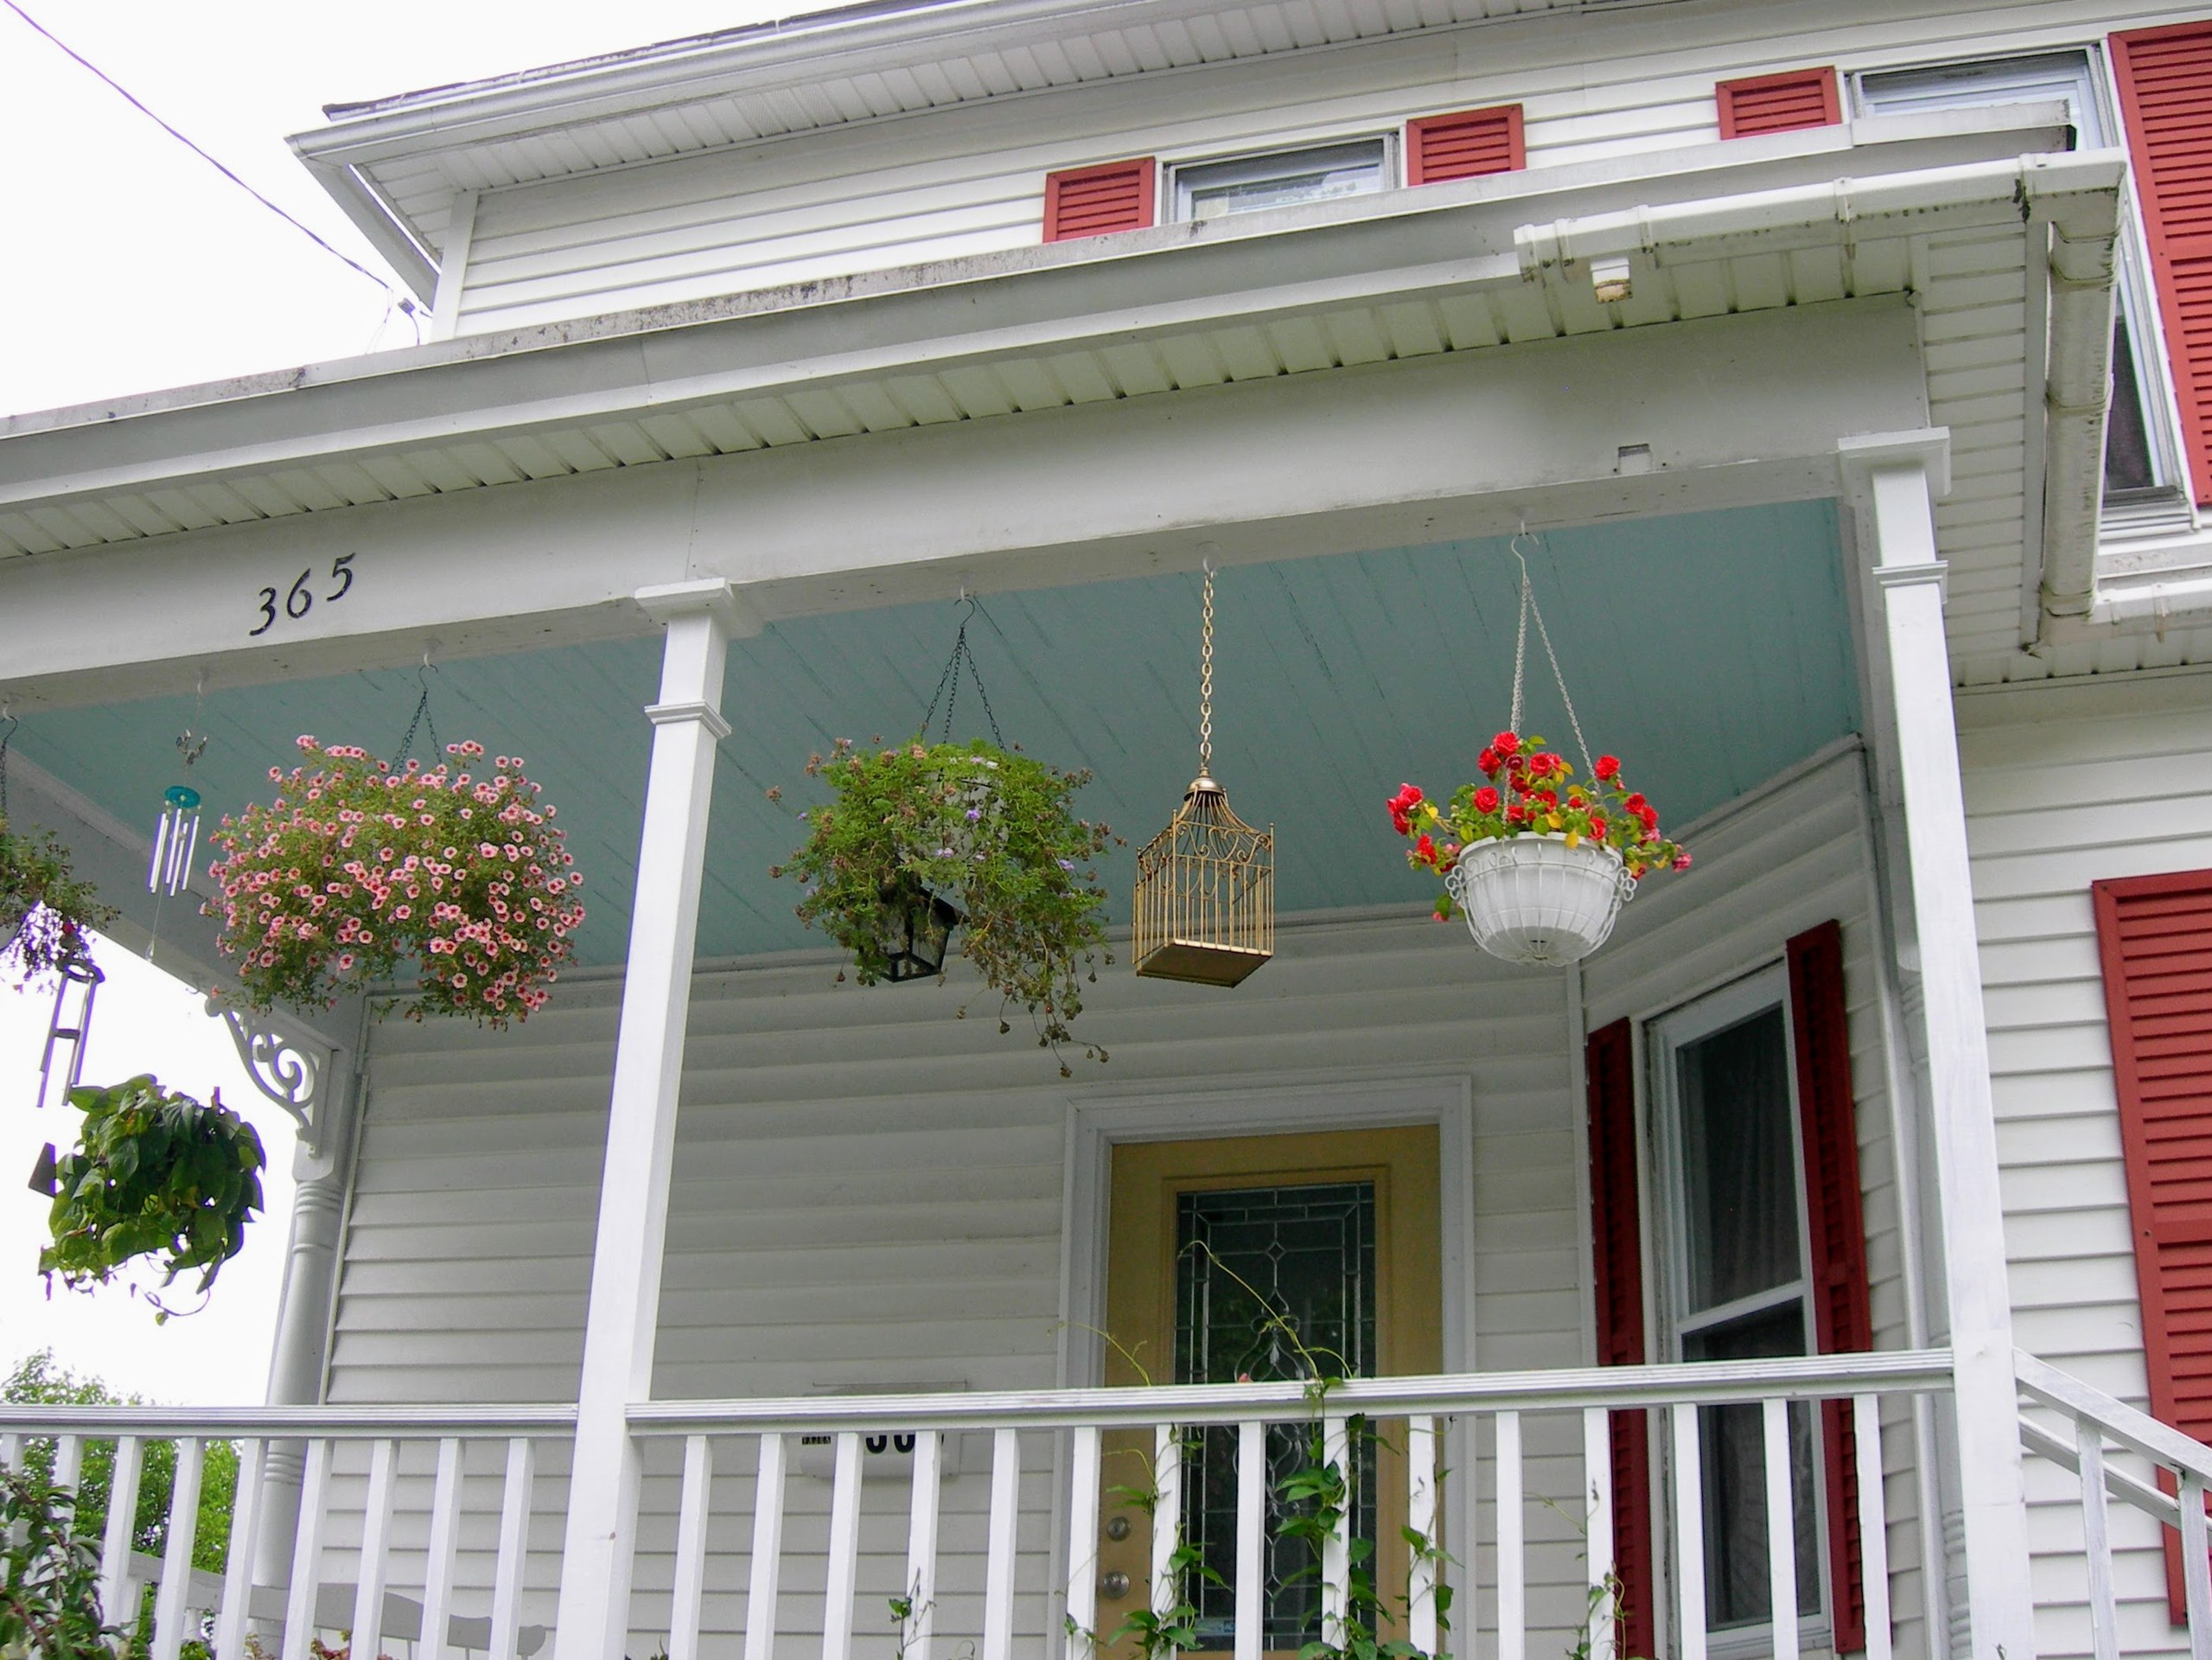 A photograph of Haint Blue paint on the porch of an American house.